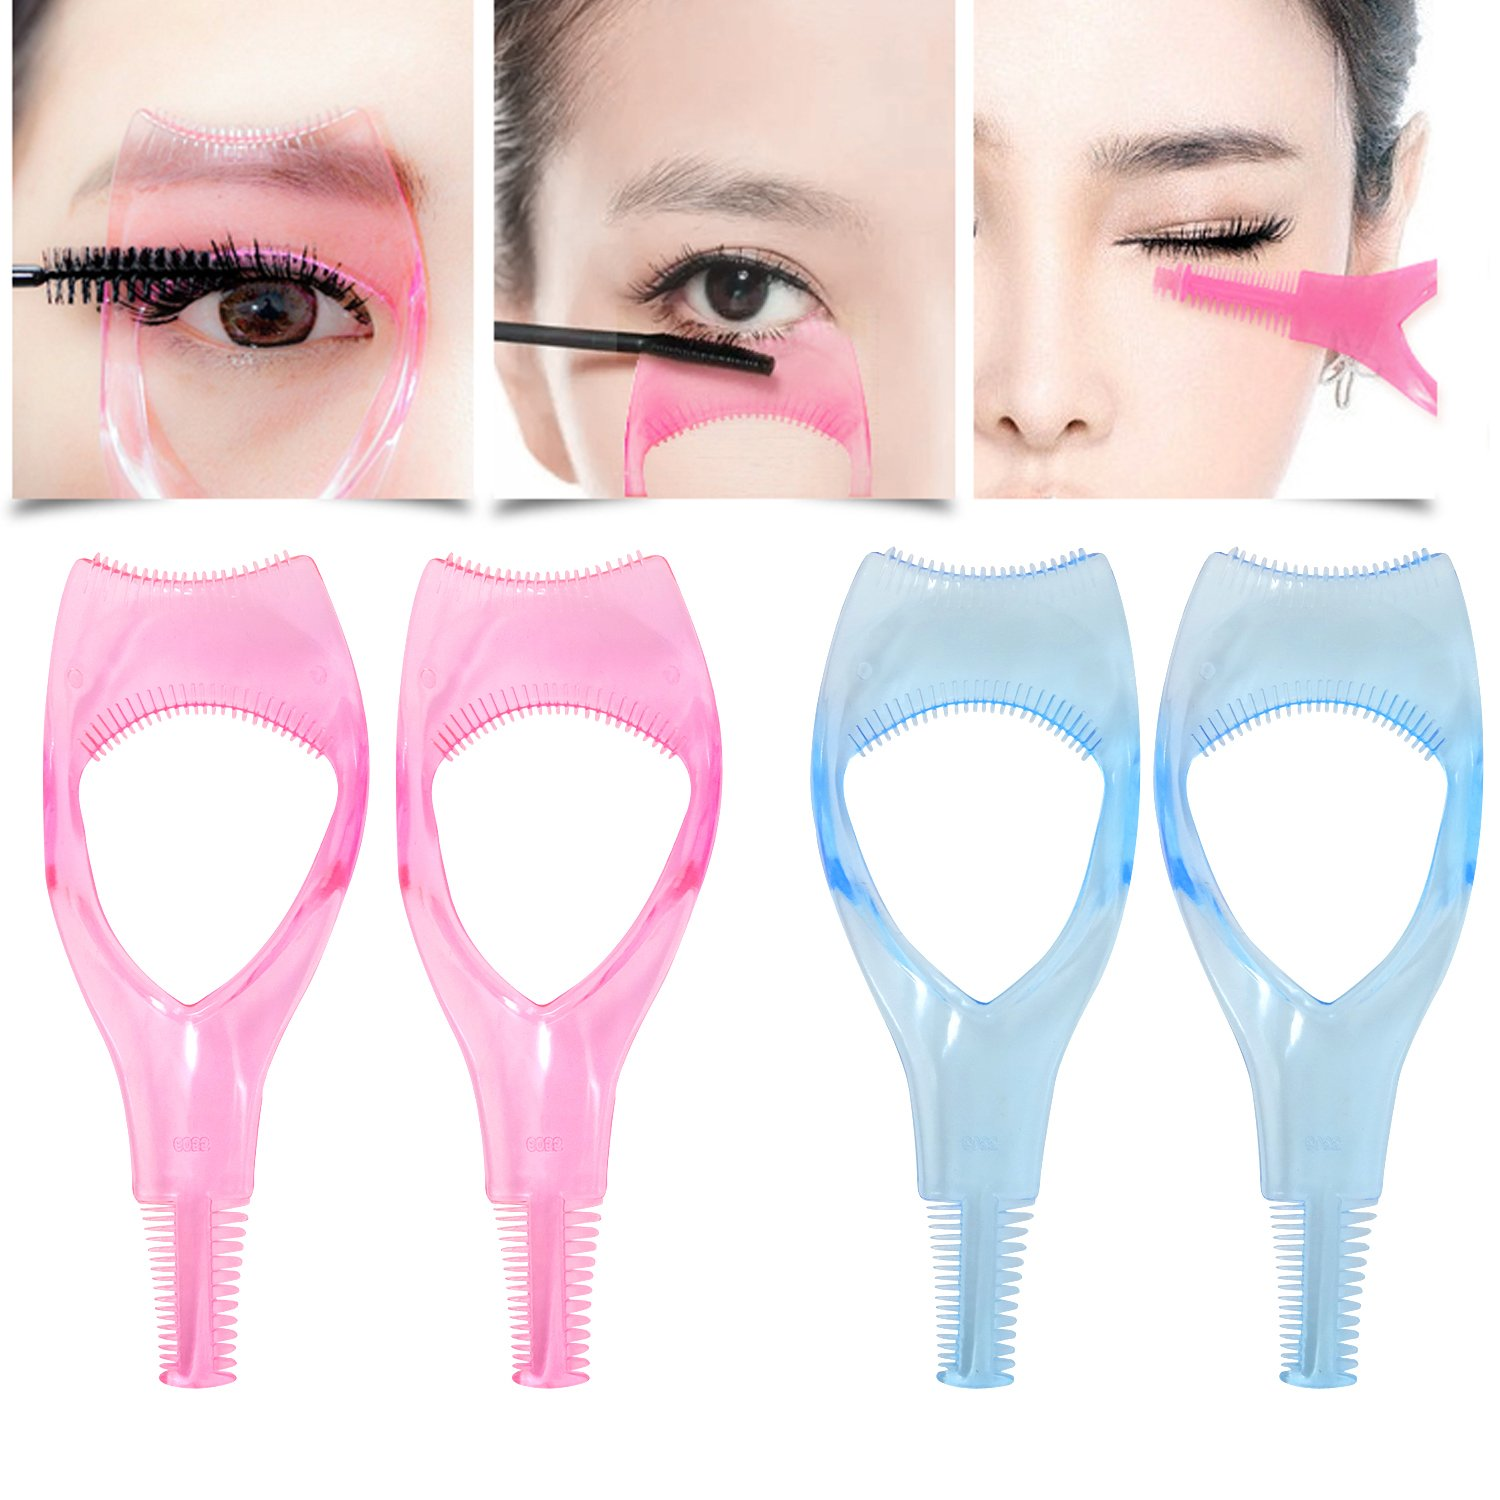 Honbay 4PCS 3 in 1 Transparent Plastic Eyelashes Tool Mascara Applicator Eyelashes Guide Eyelashes Comb Makeup Tool, Pink and Blue